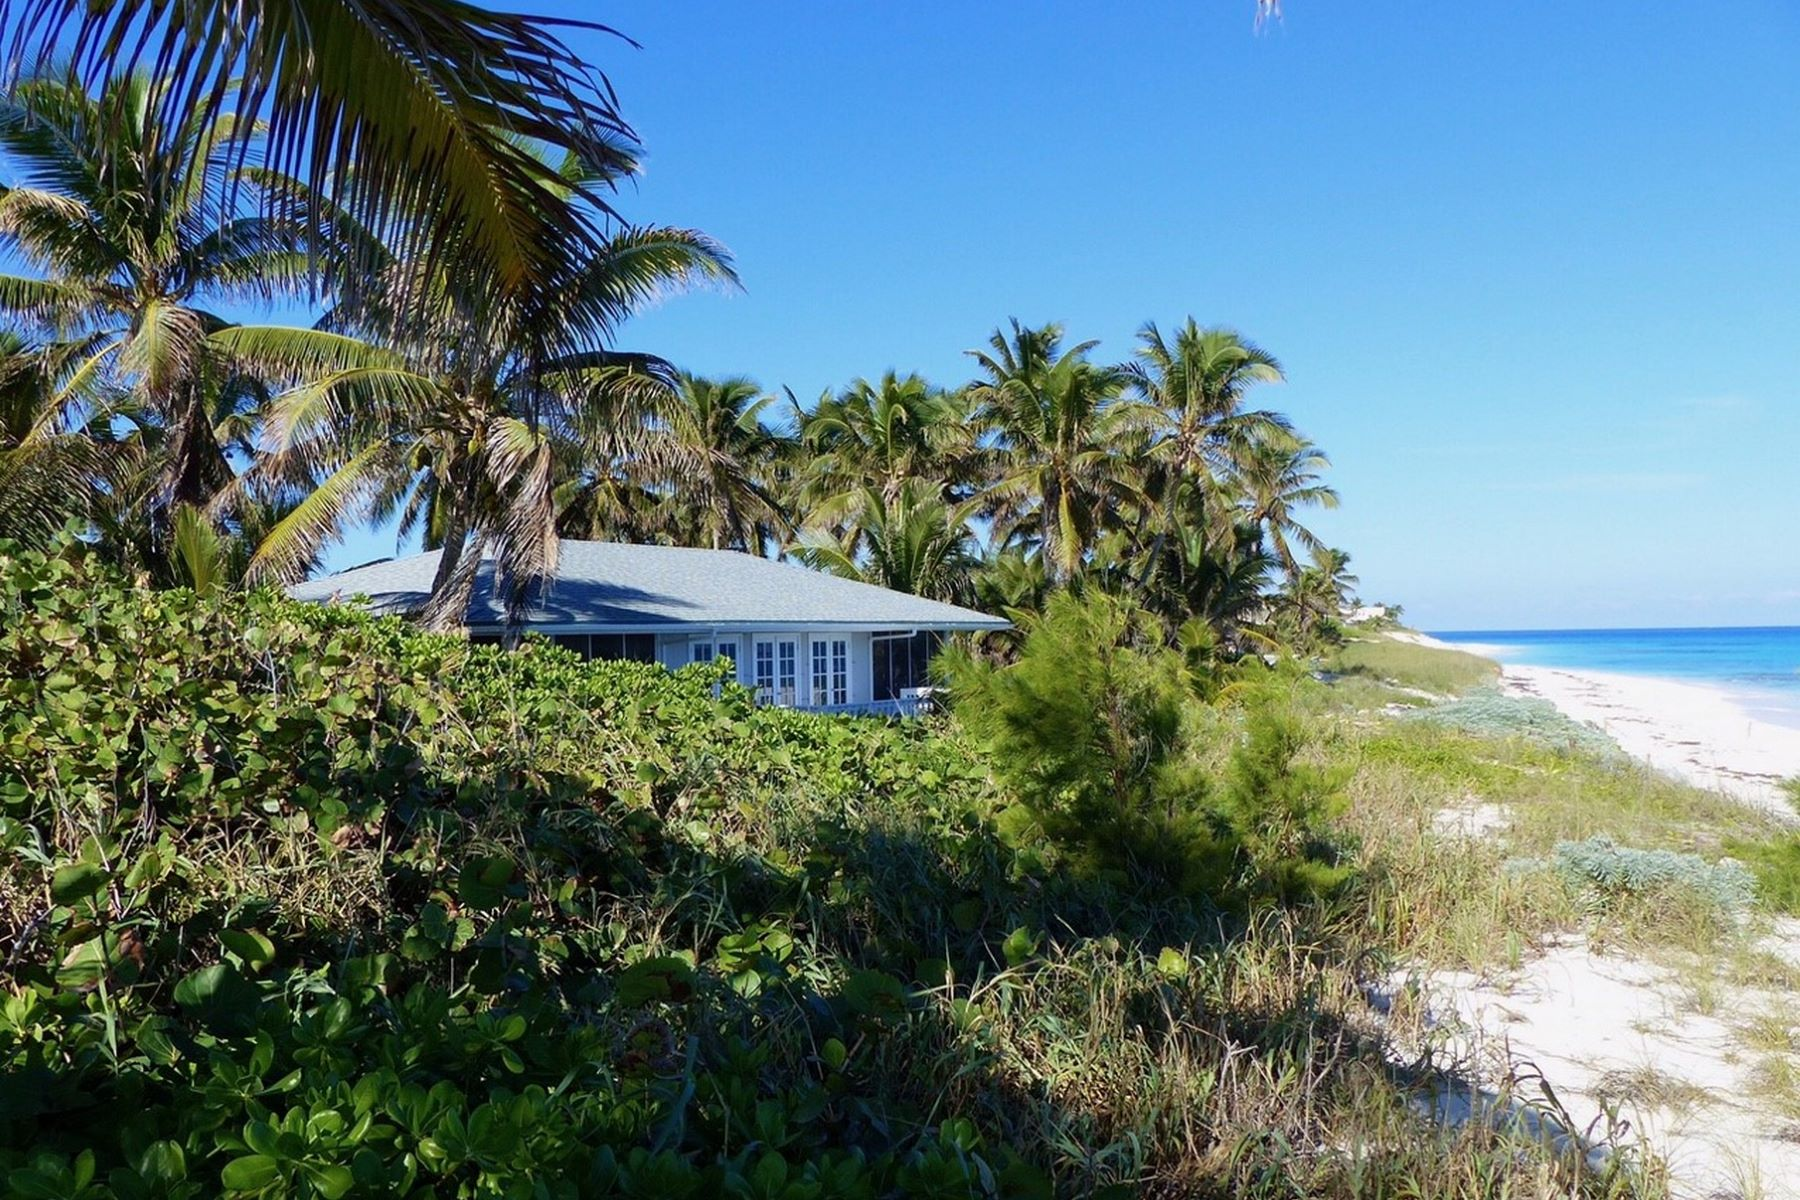 Single Family Home for Sale at Meant to Be Scotland Cay, Abaco Bahamas